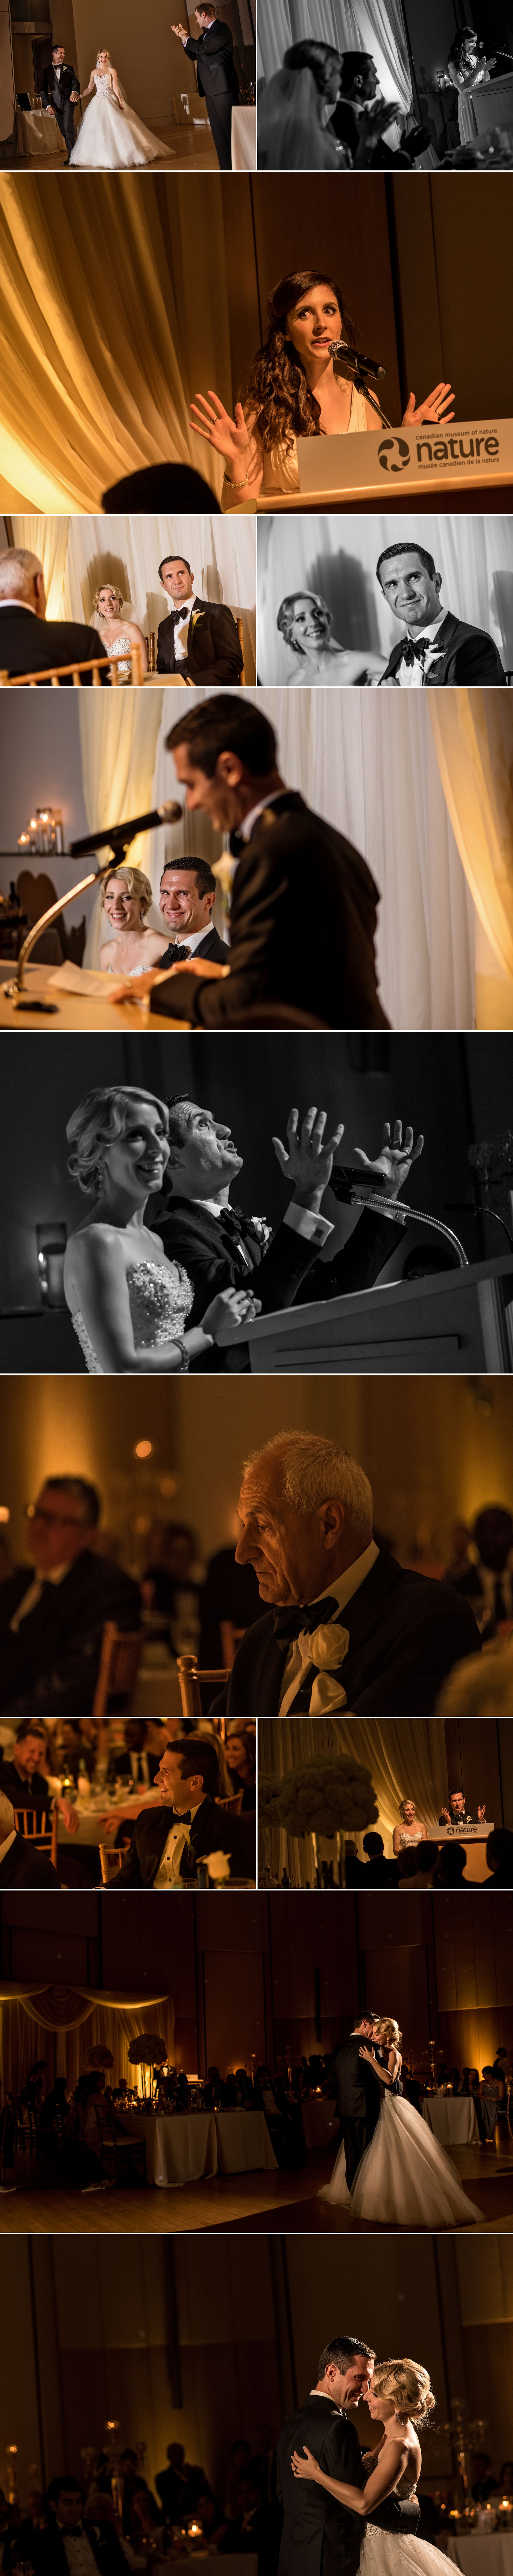 First dance and wedding reception at the museum of nature